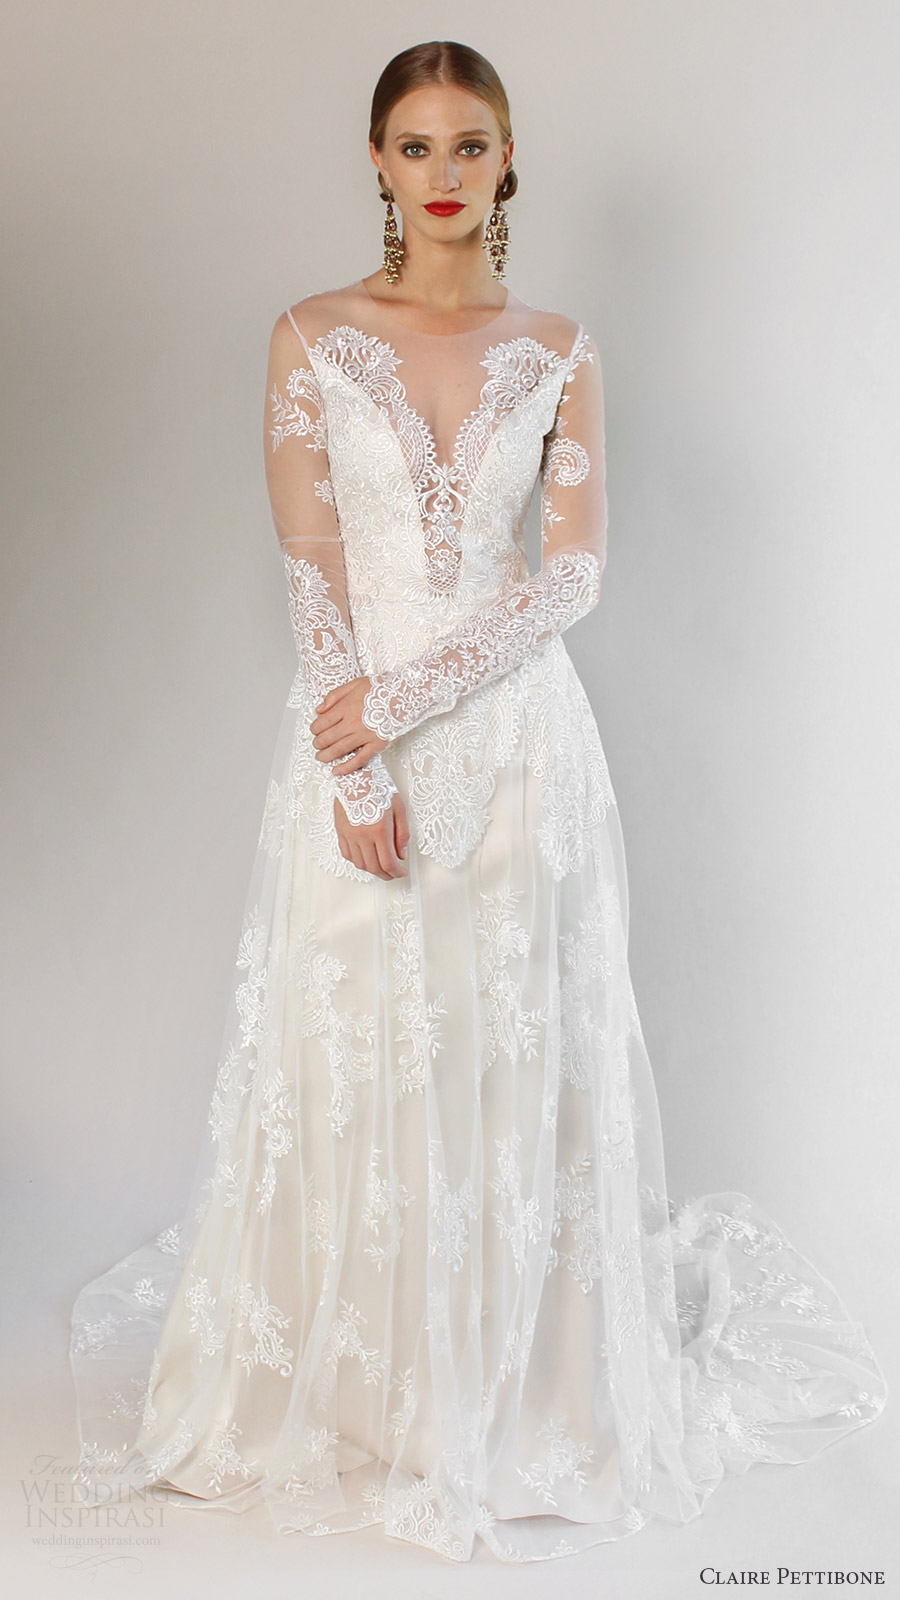 Romantique by claire pettibone spring 2017 wedding dresses for Dresses for spring wedding